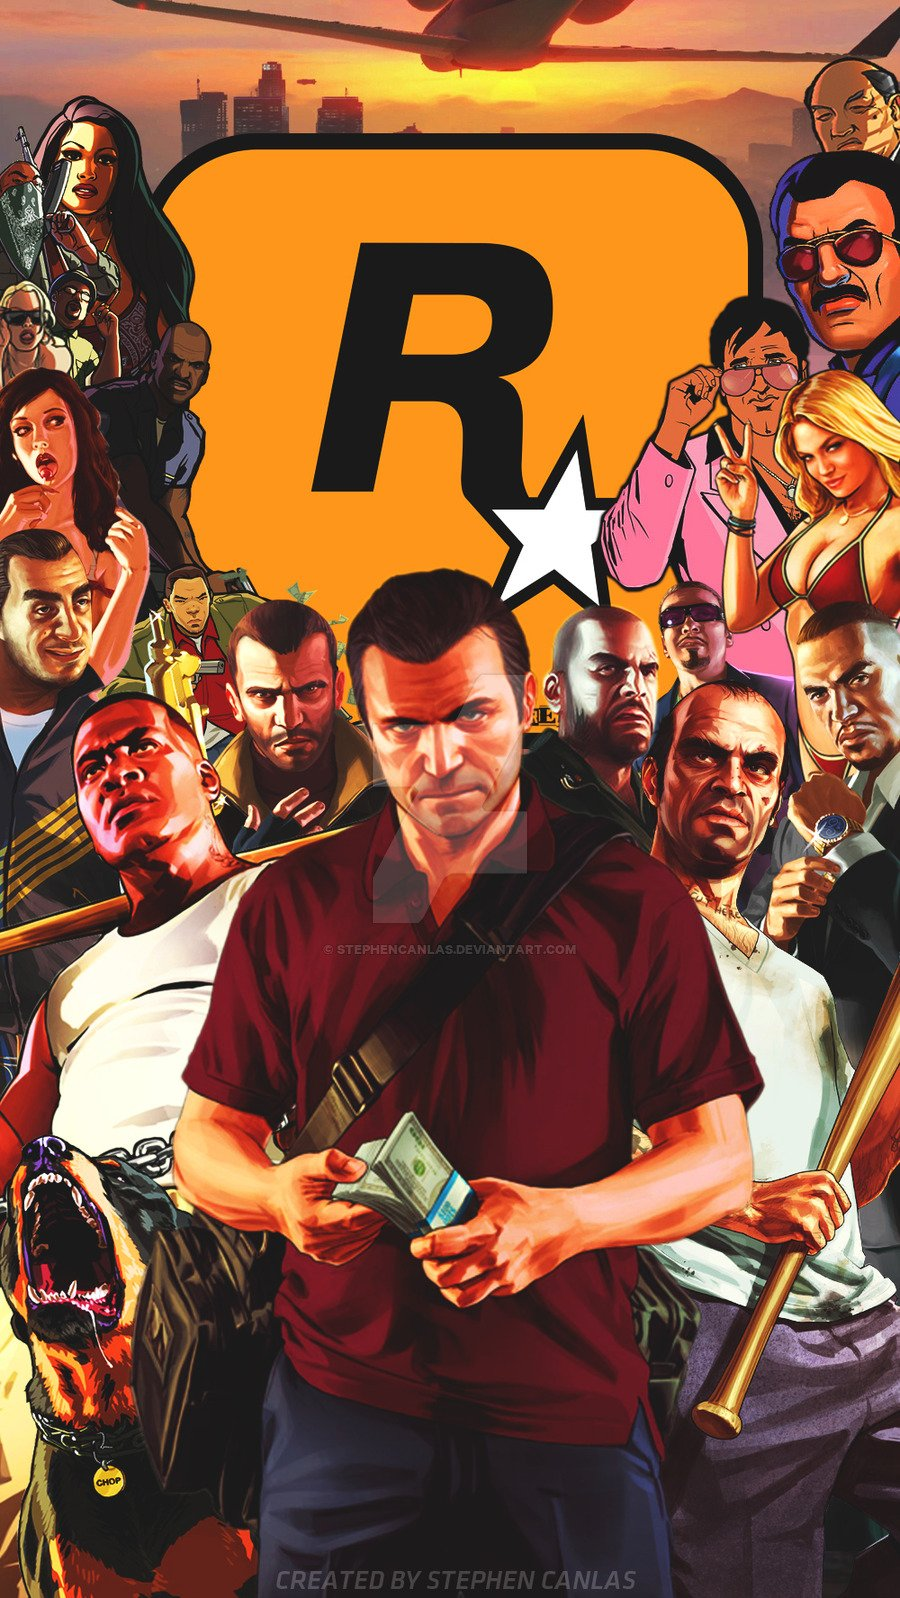 Gta 5 iphone wallpaper wallpapersafari - Gta v wallpaper ...